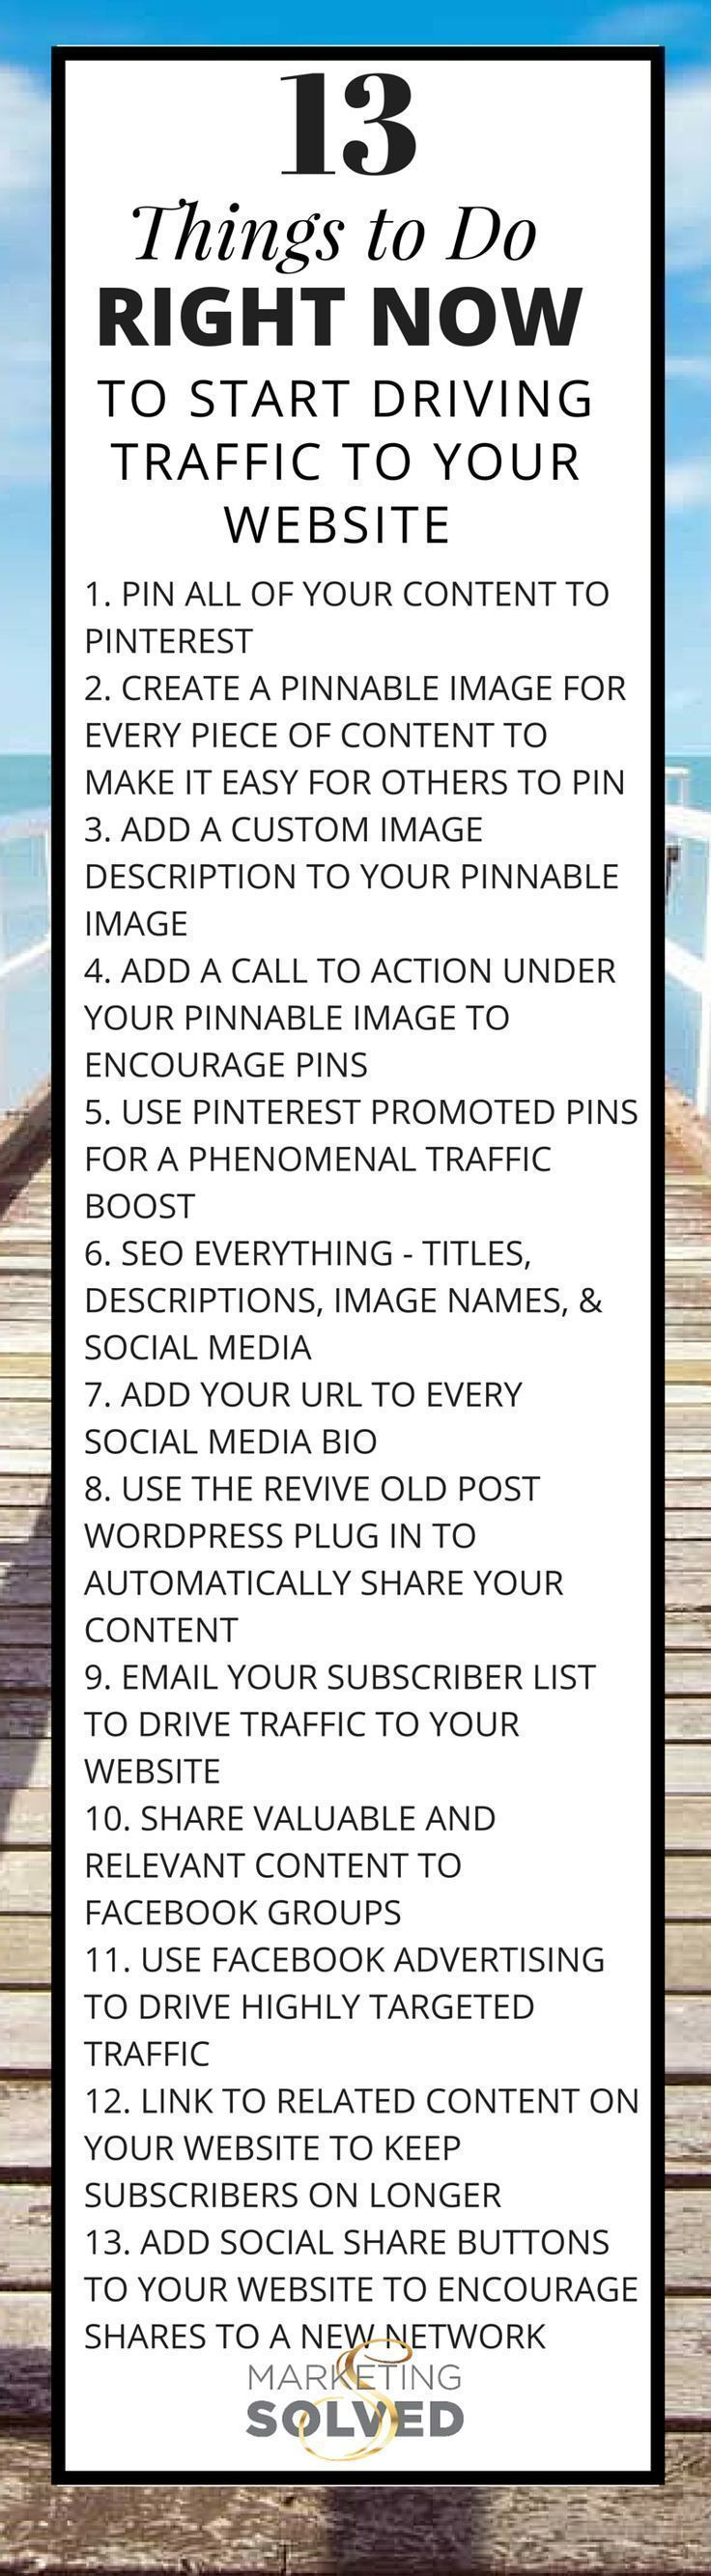 13 Things You Need to Do Right Now to Start Driving Traffic To Your Website - Grab the PDF at Marketing Solved Pinterest Tips for Small Businesses | Social Media Marketing Strategies For Small Businesses | Social Media Marketing Info for Small Business Owners www.MaritimeVintage.com #SocialMediaMarketingStrategies #socialmediatips